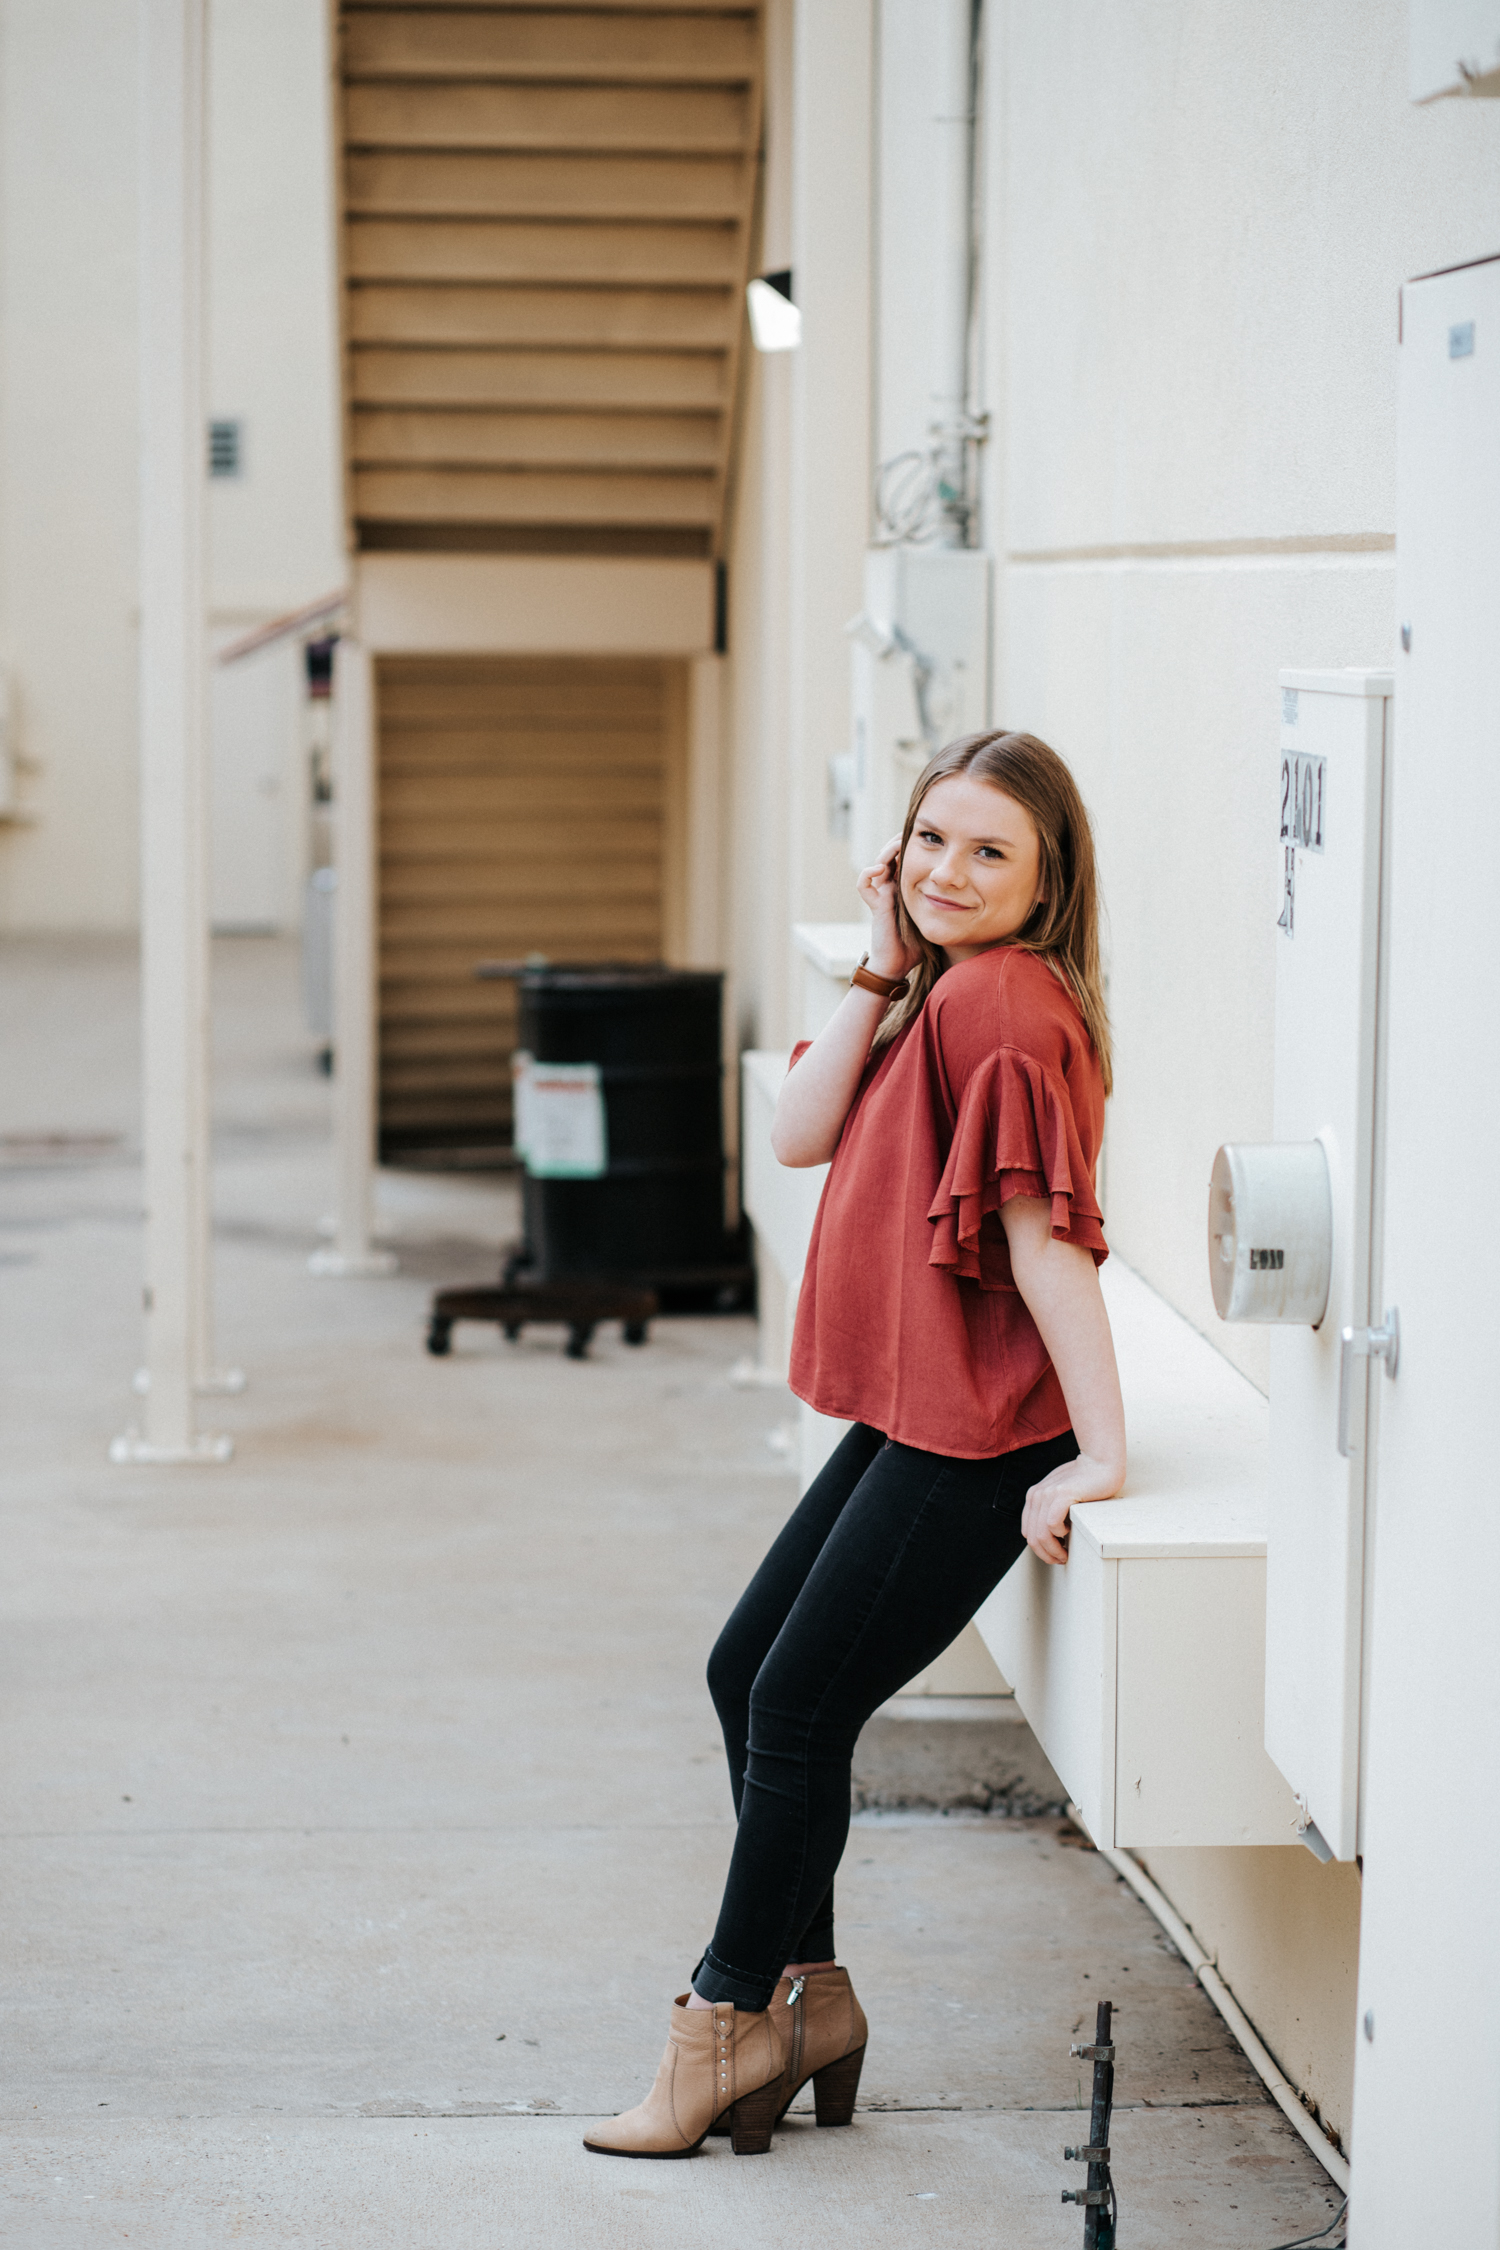 Sierra Wright // My name is Sierra Wright and I attend Rockwall High School, and I'm excited for senior year because we will have a very free schedule and more opportunity's to have one on one with our teachers.